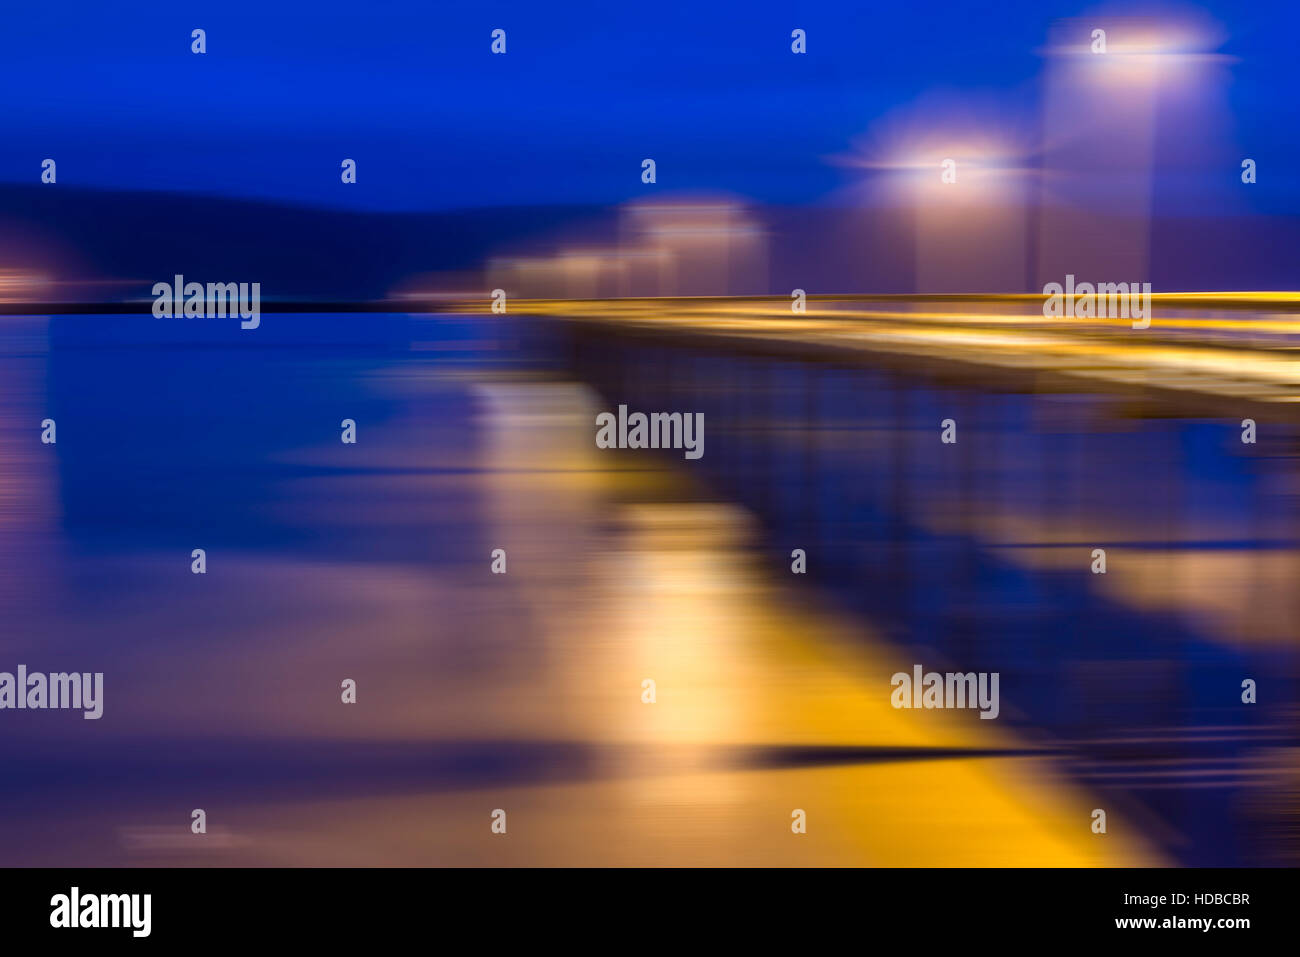 motion blur effect, pier with lamppost at night. - Stock Image